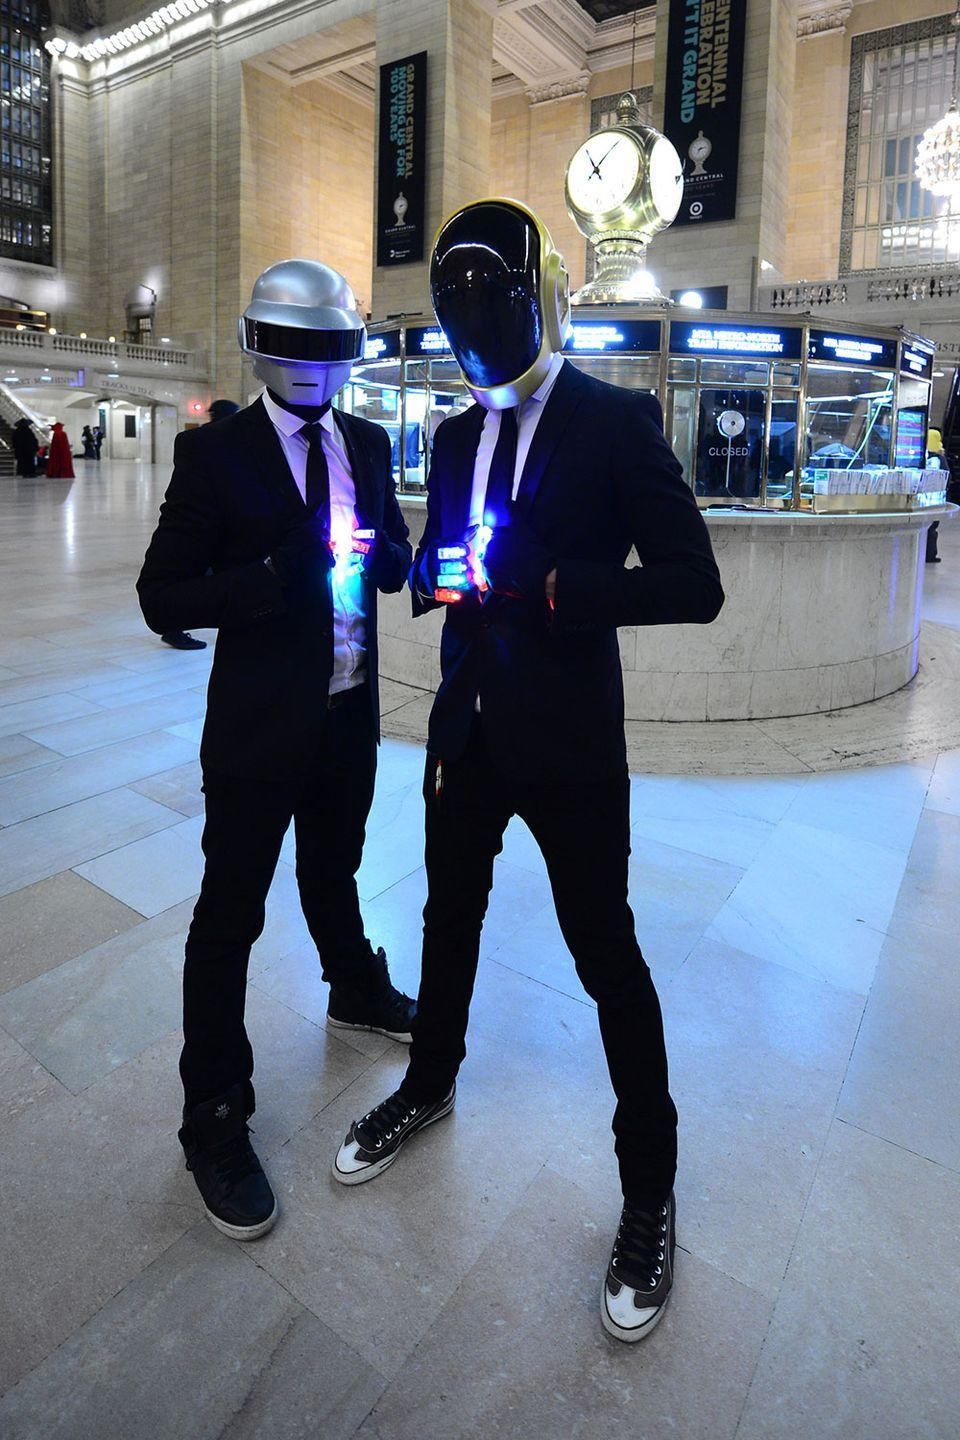 <p>We really had to double-check whether these were Daft Punk costumes or the actual band members.</p>